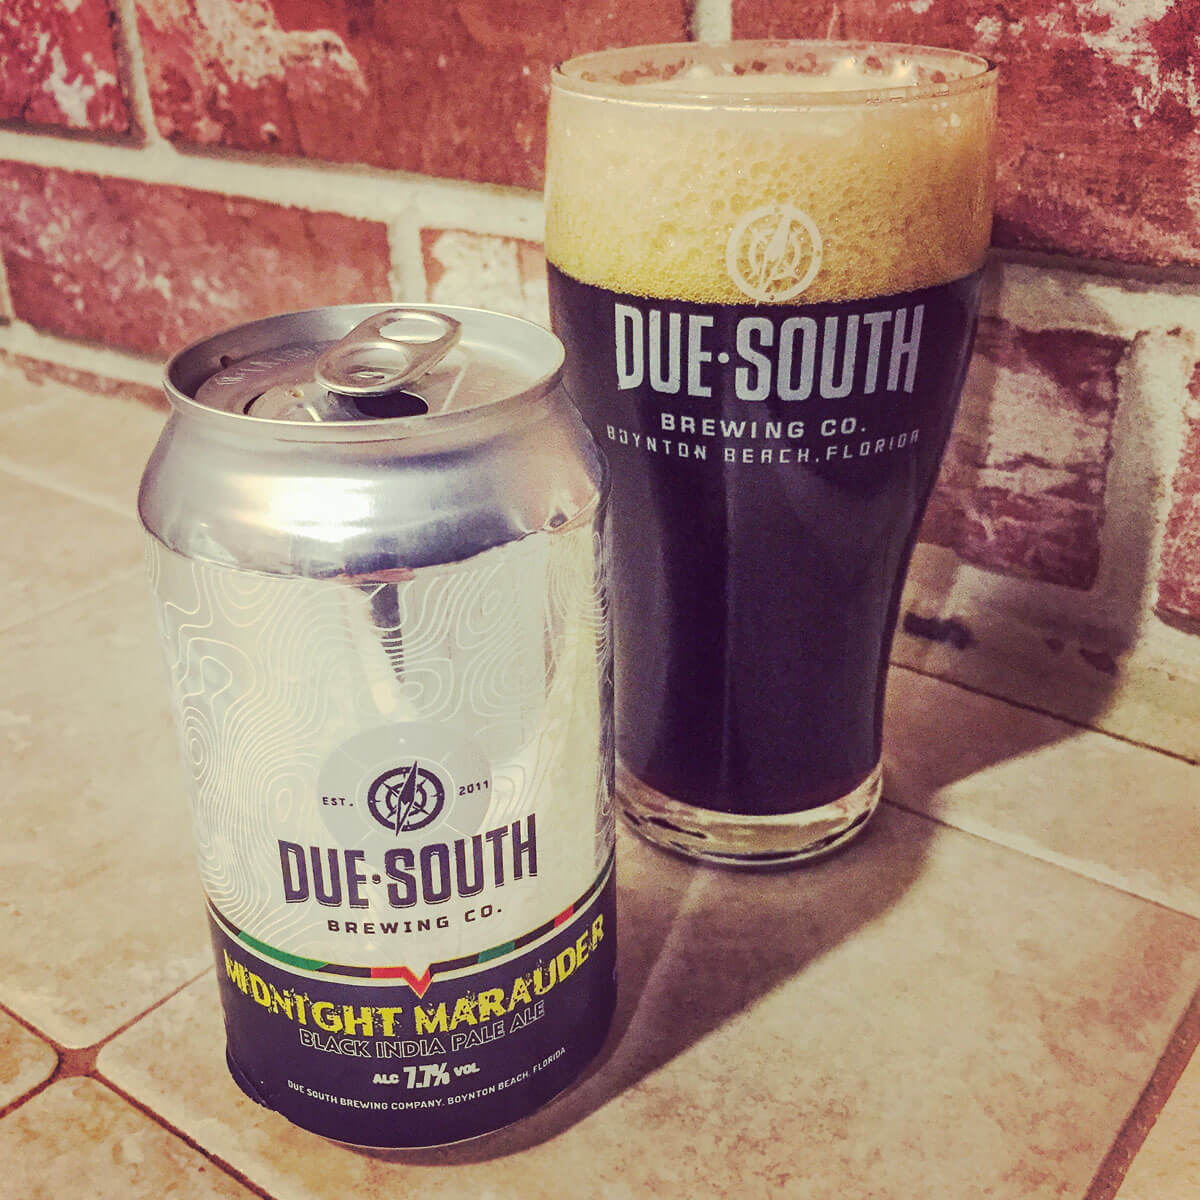 Midnight Marauder, an American Black Ale by Due South Brewing Co.